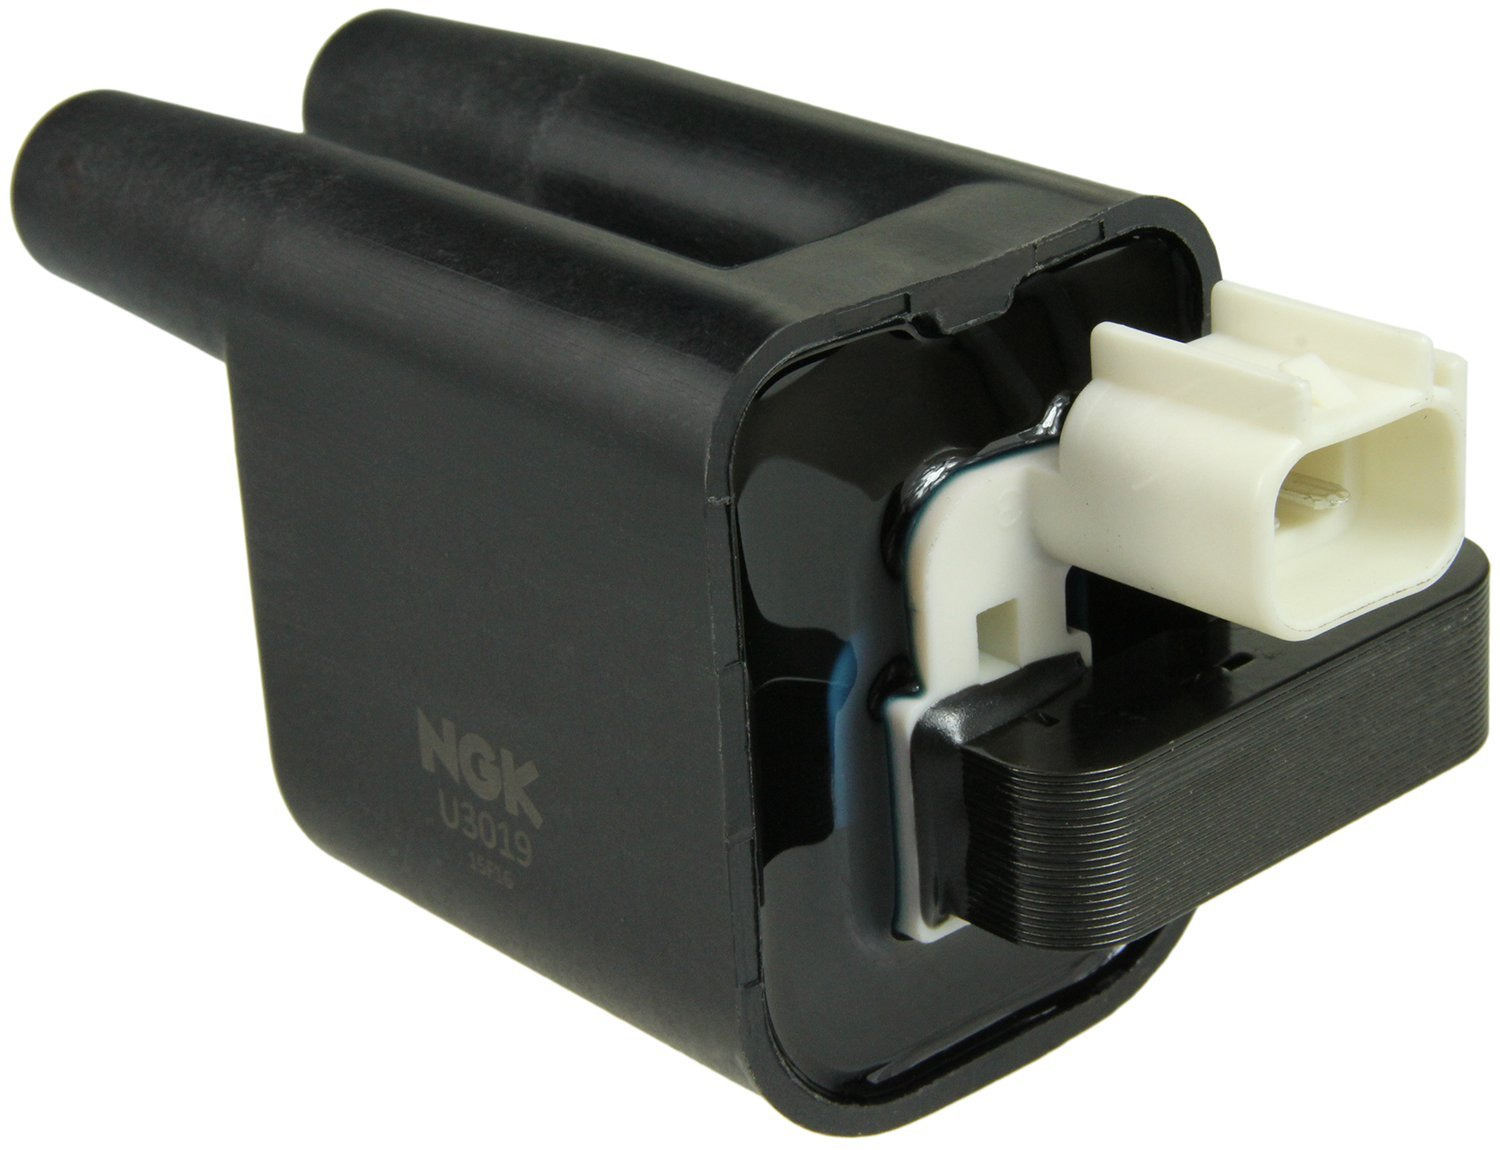 NGK U3019 Pack of 1 48631 DIS Ignition Coil